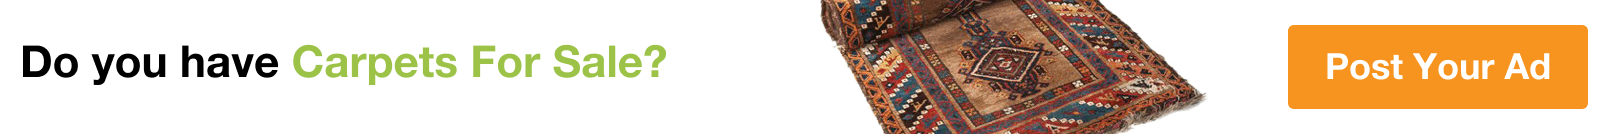 Carpets for Sale in Iraq